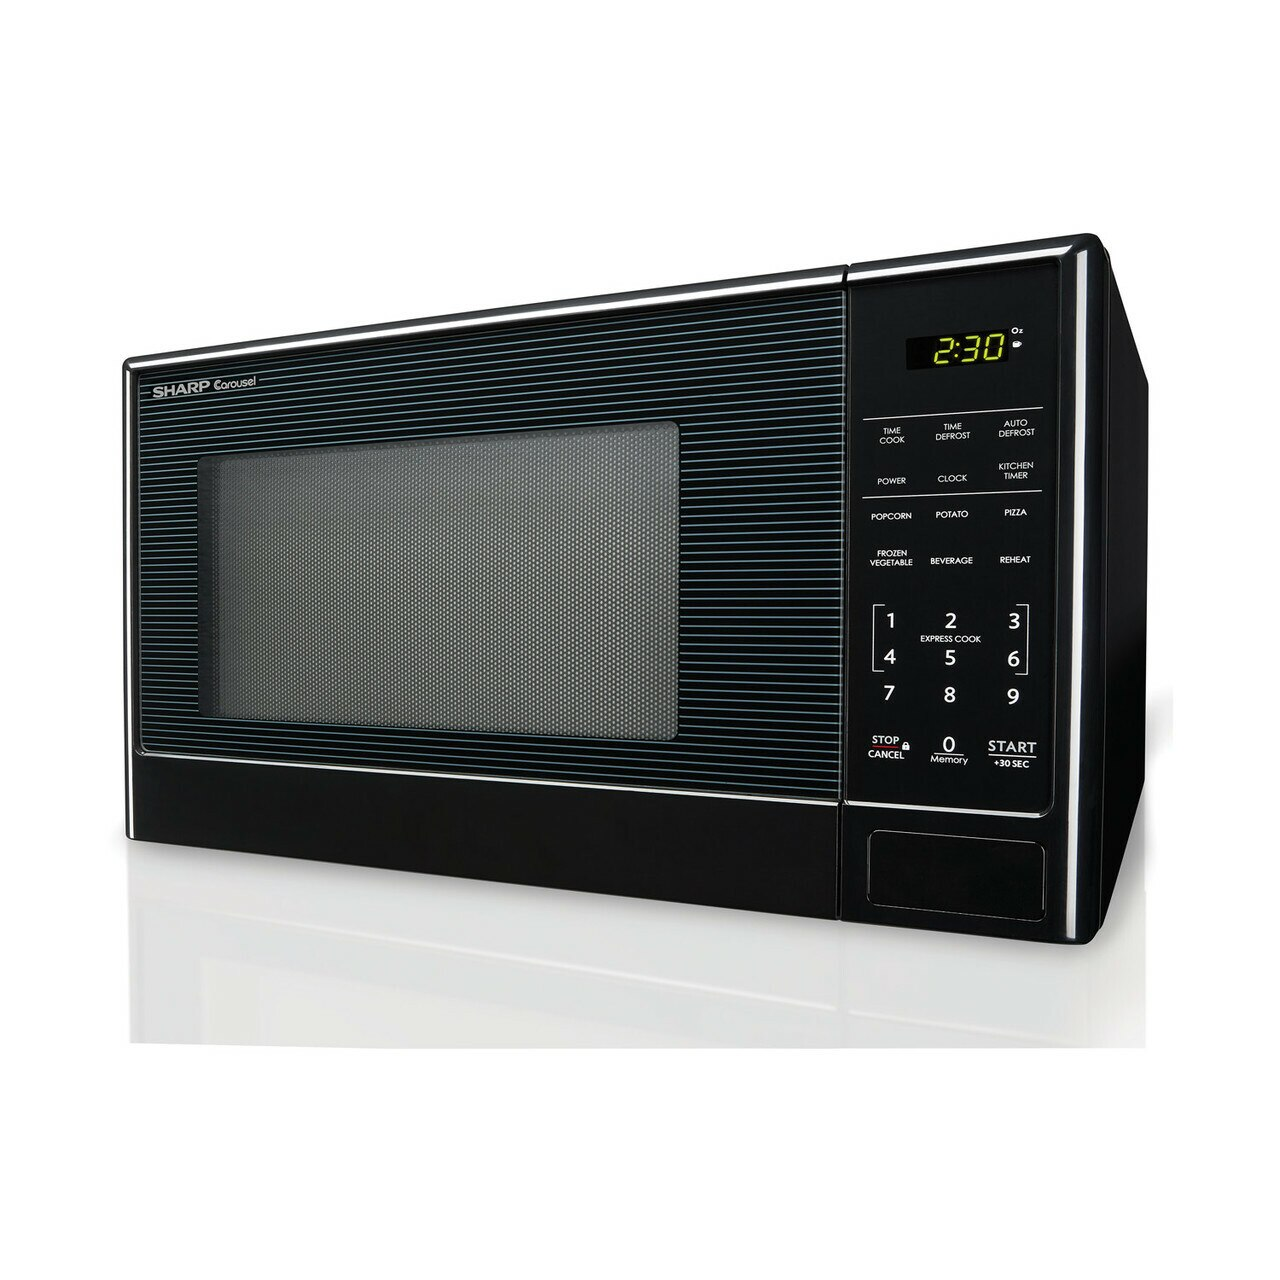 1.1 cu. ft. Sharp Black Carousel Countertop Microwave (SMC1111AB) – left side view